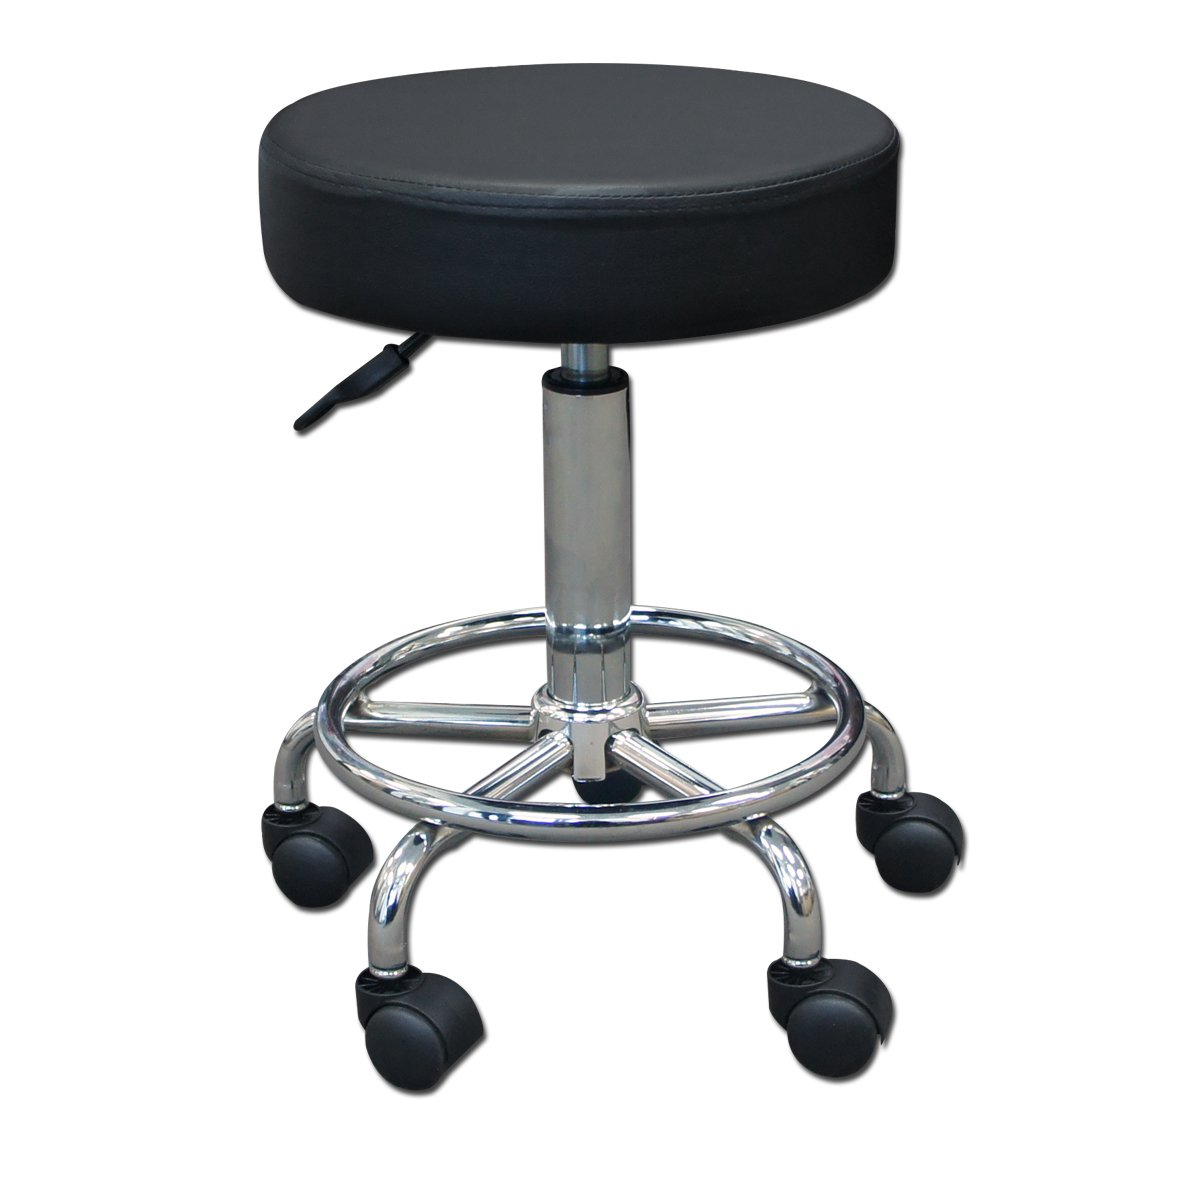 "14"" Round Seat Rolling Hydraulic Steel Pneumatic Stool on Wheels - Black"